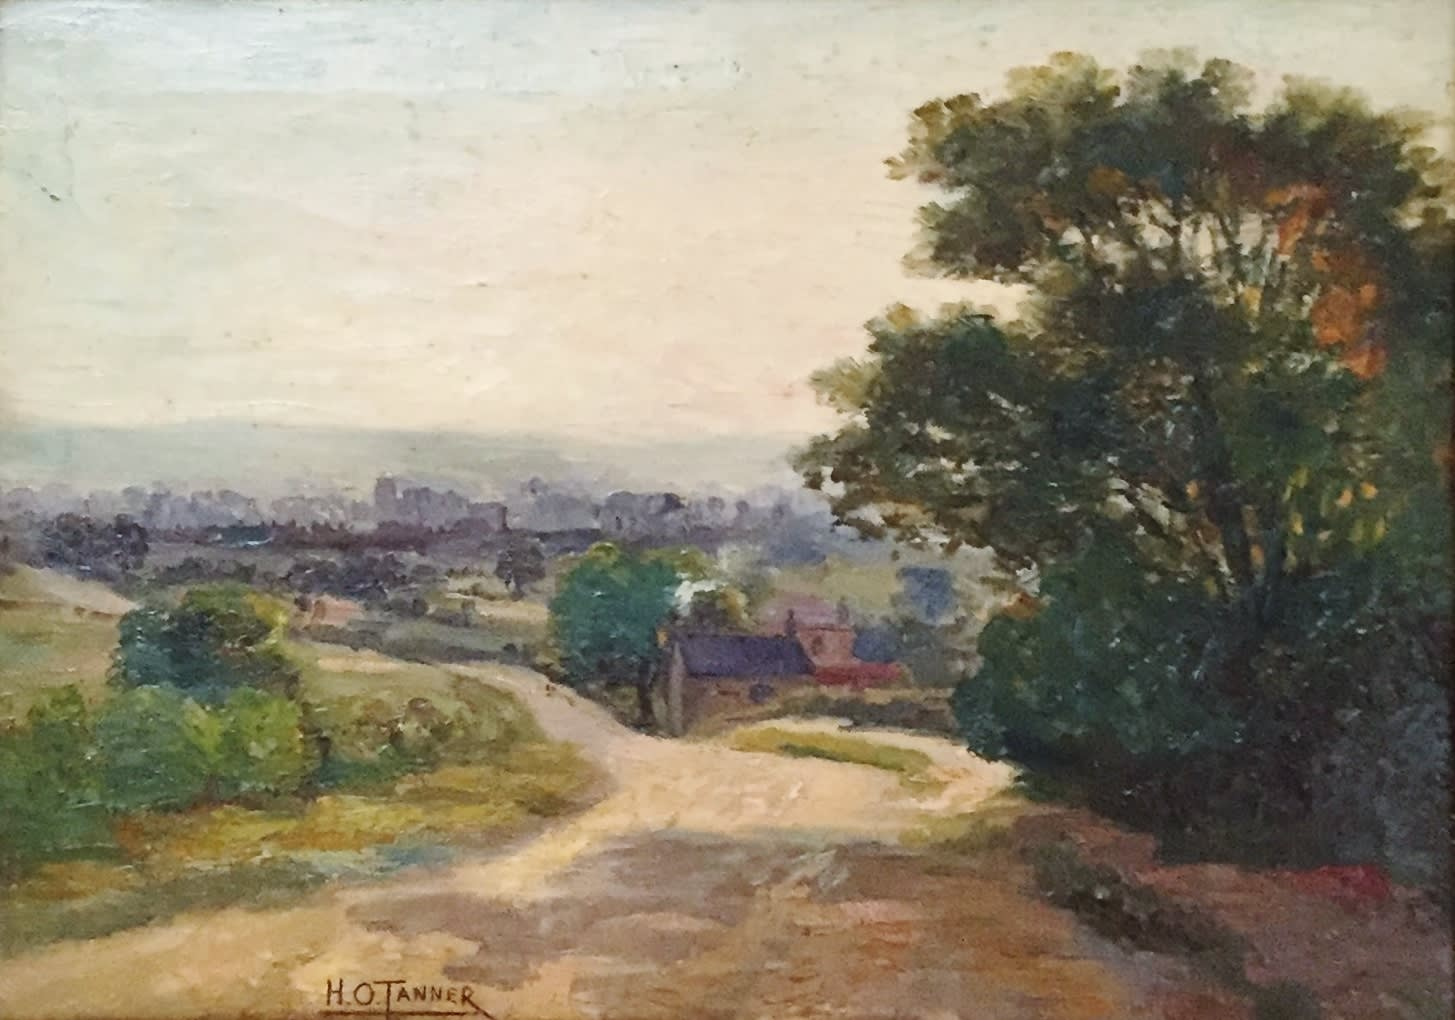 Henry Ossawa Tanner, Untitled (Road and tree on the side), c.1893